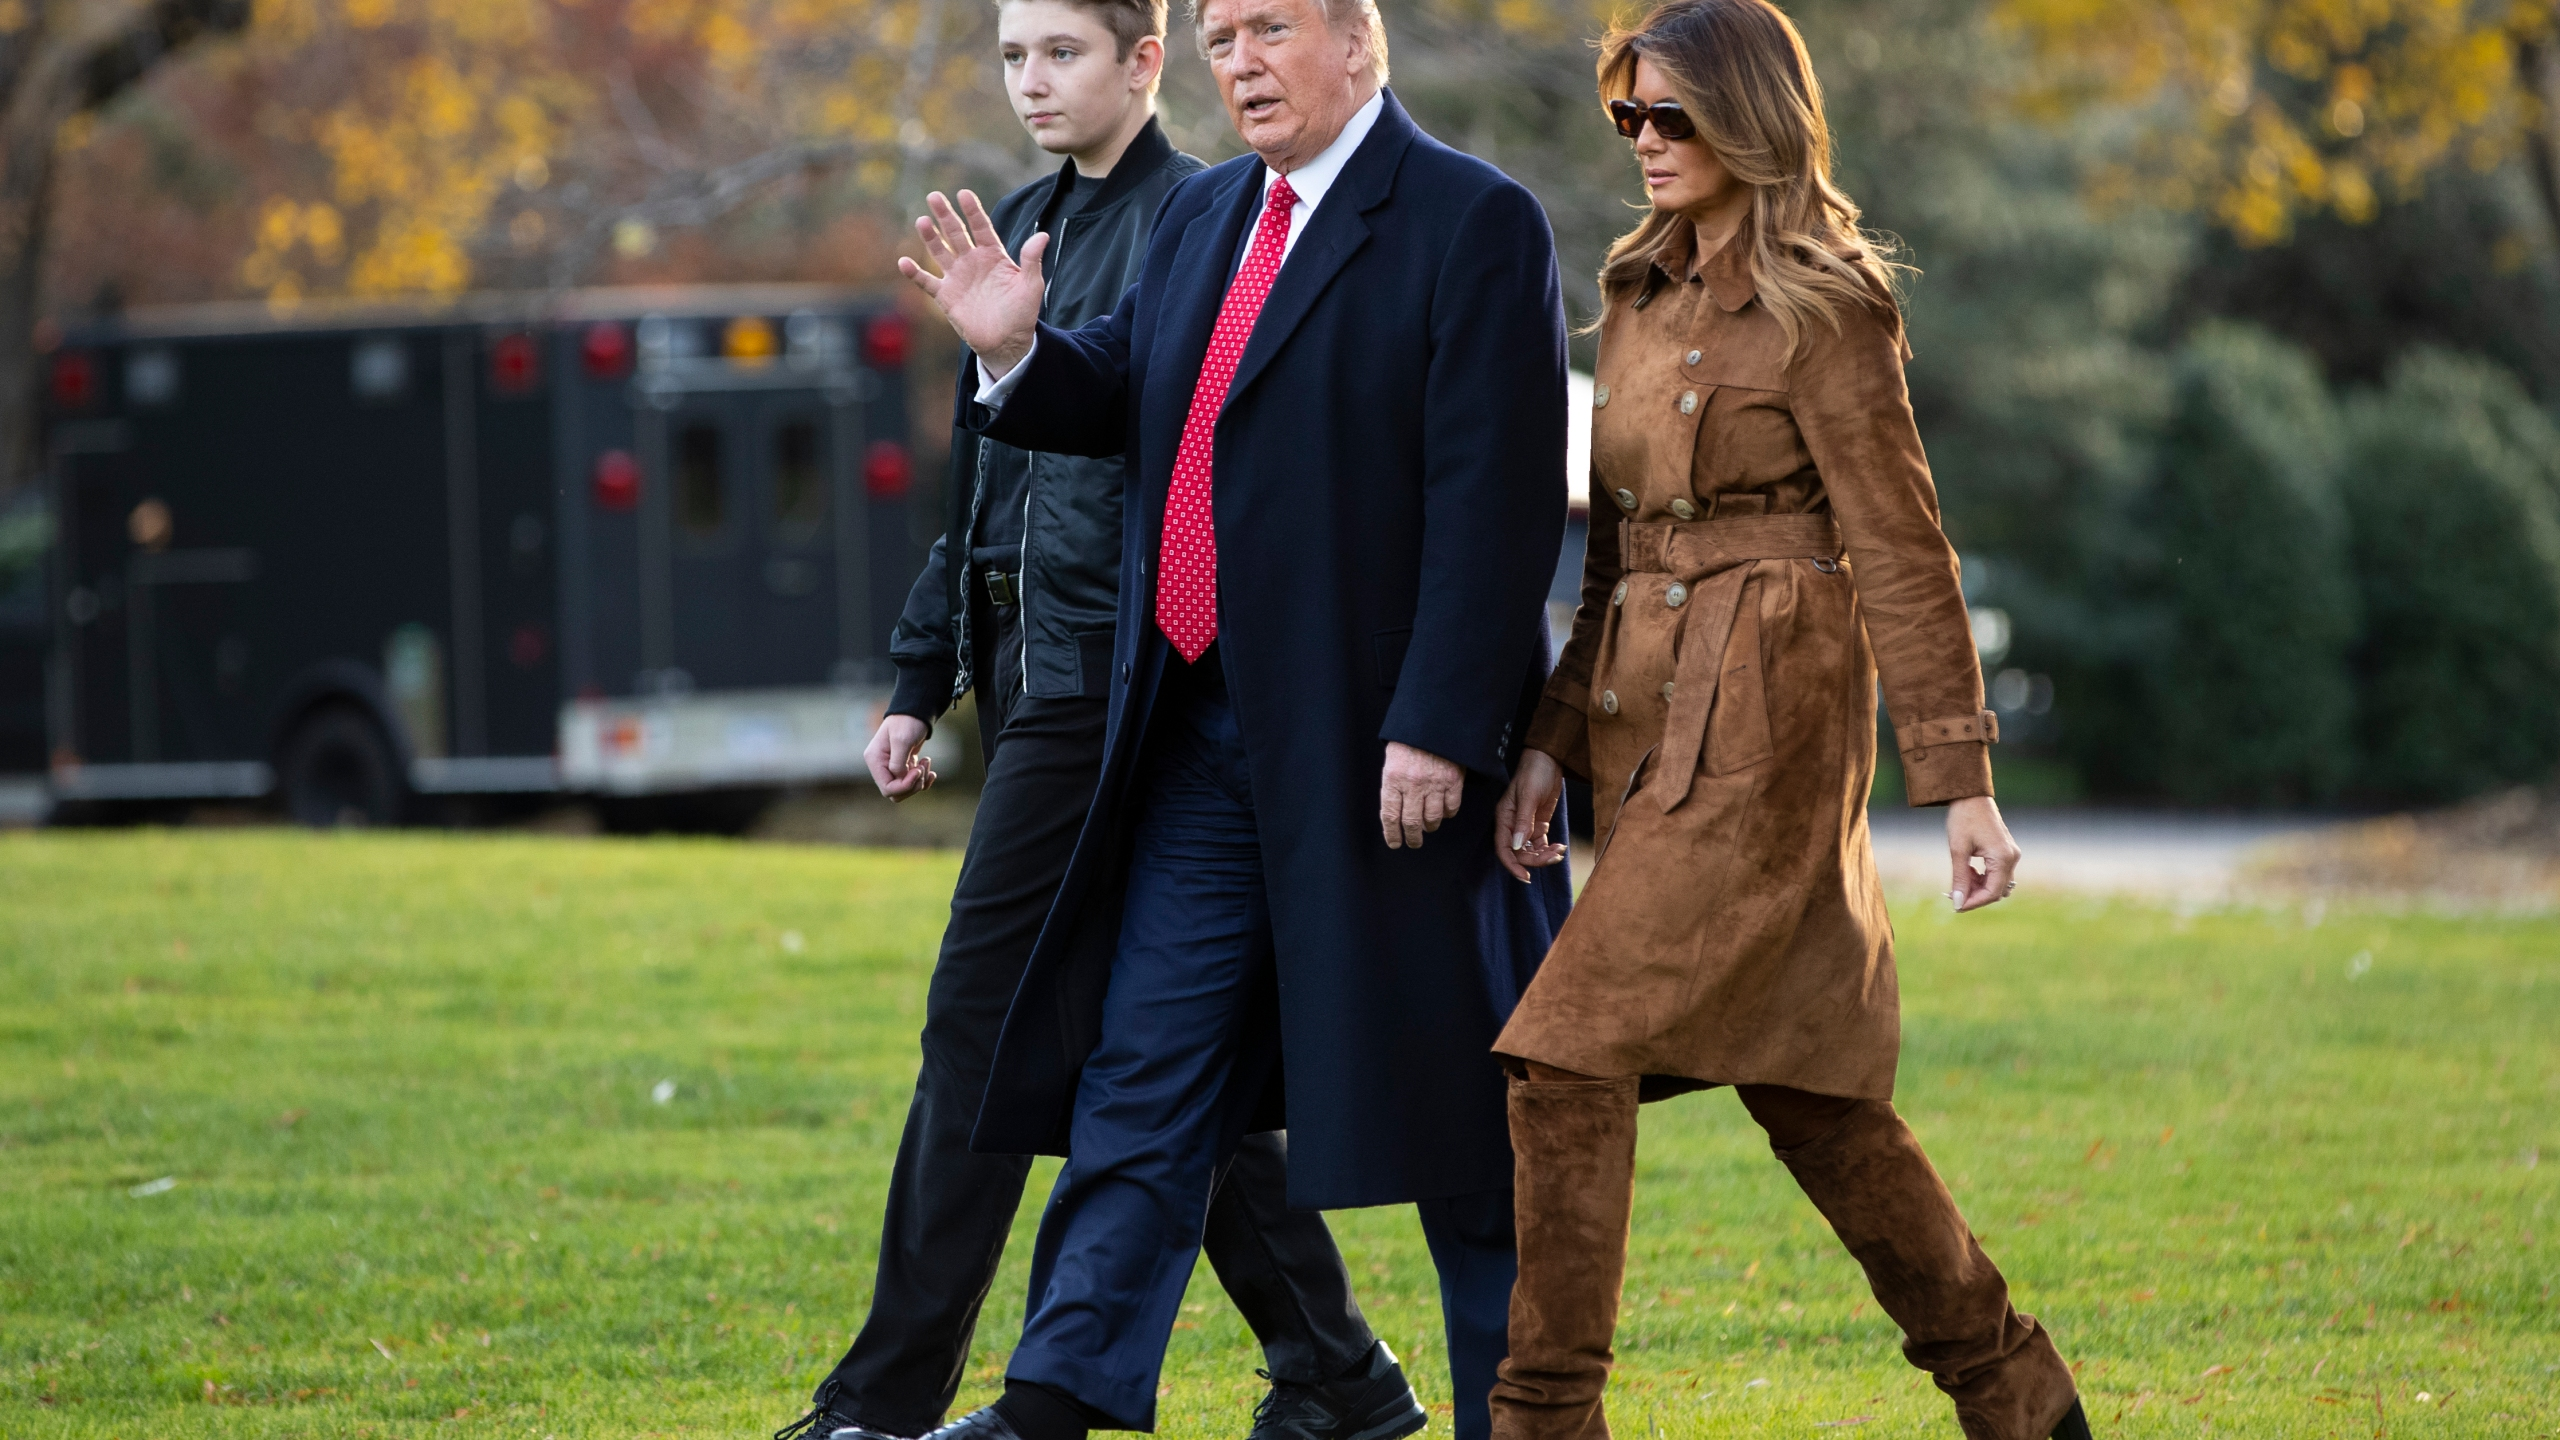 FILE - In this Tuesday, Nov. 26, 2019 file photo, President Donald Trump, first lady Melania Trump, and Barron Trump, walk to board Marine One on the South Lawn of the White House in Washington. President Donald Trump insists that schools reopen so students can go back to their classrooms, but the Maryland private school where his son Barron is enrolled is among those under county orders to stay closed. (AP Photo/ Evan Vucci, File)